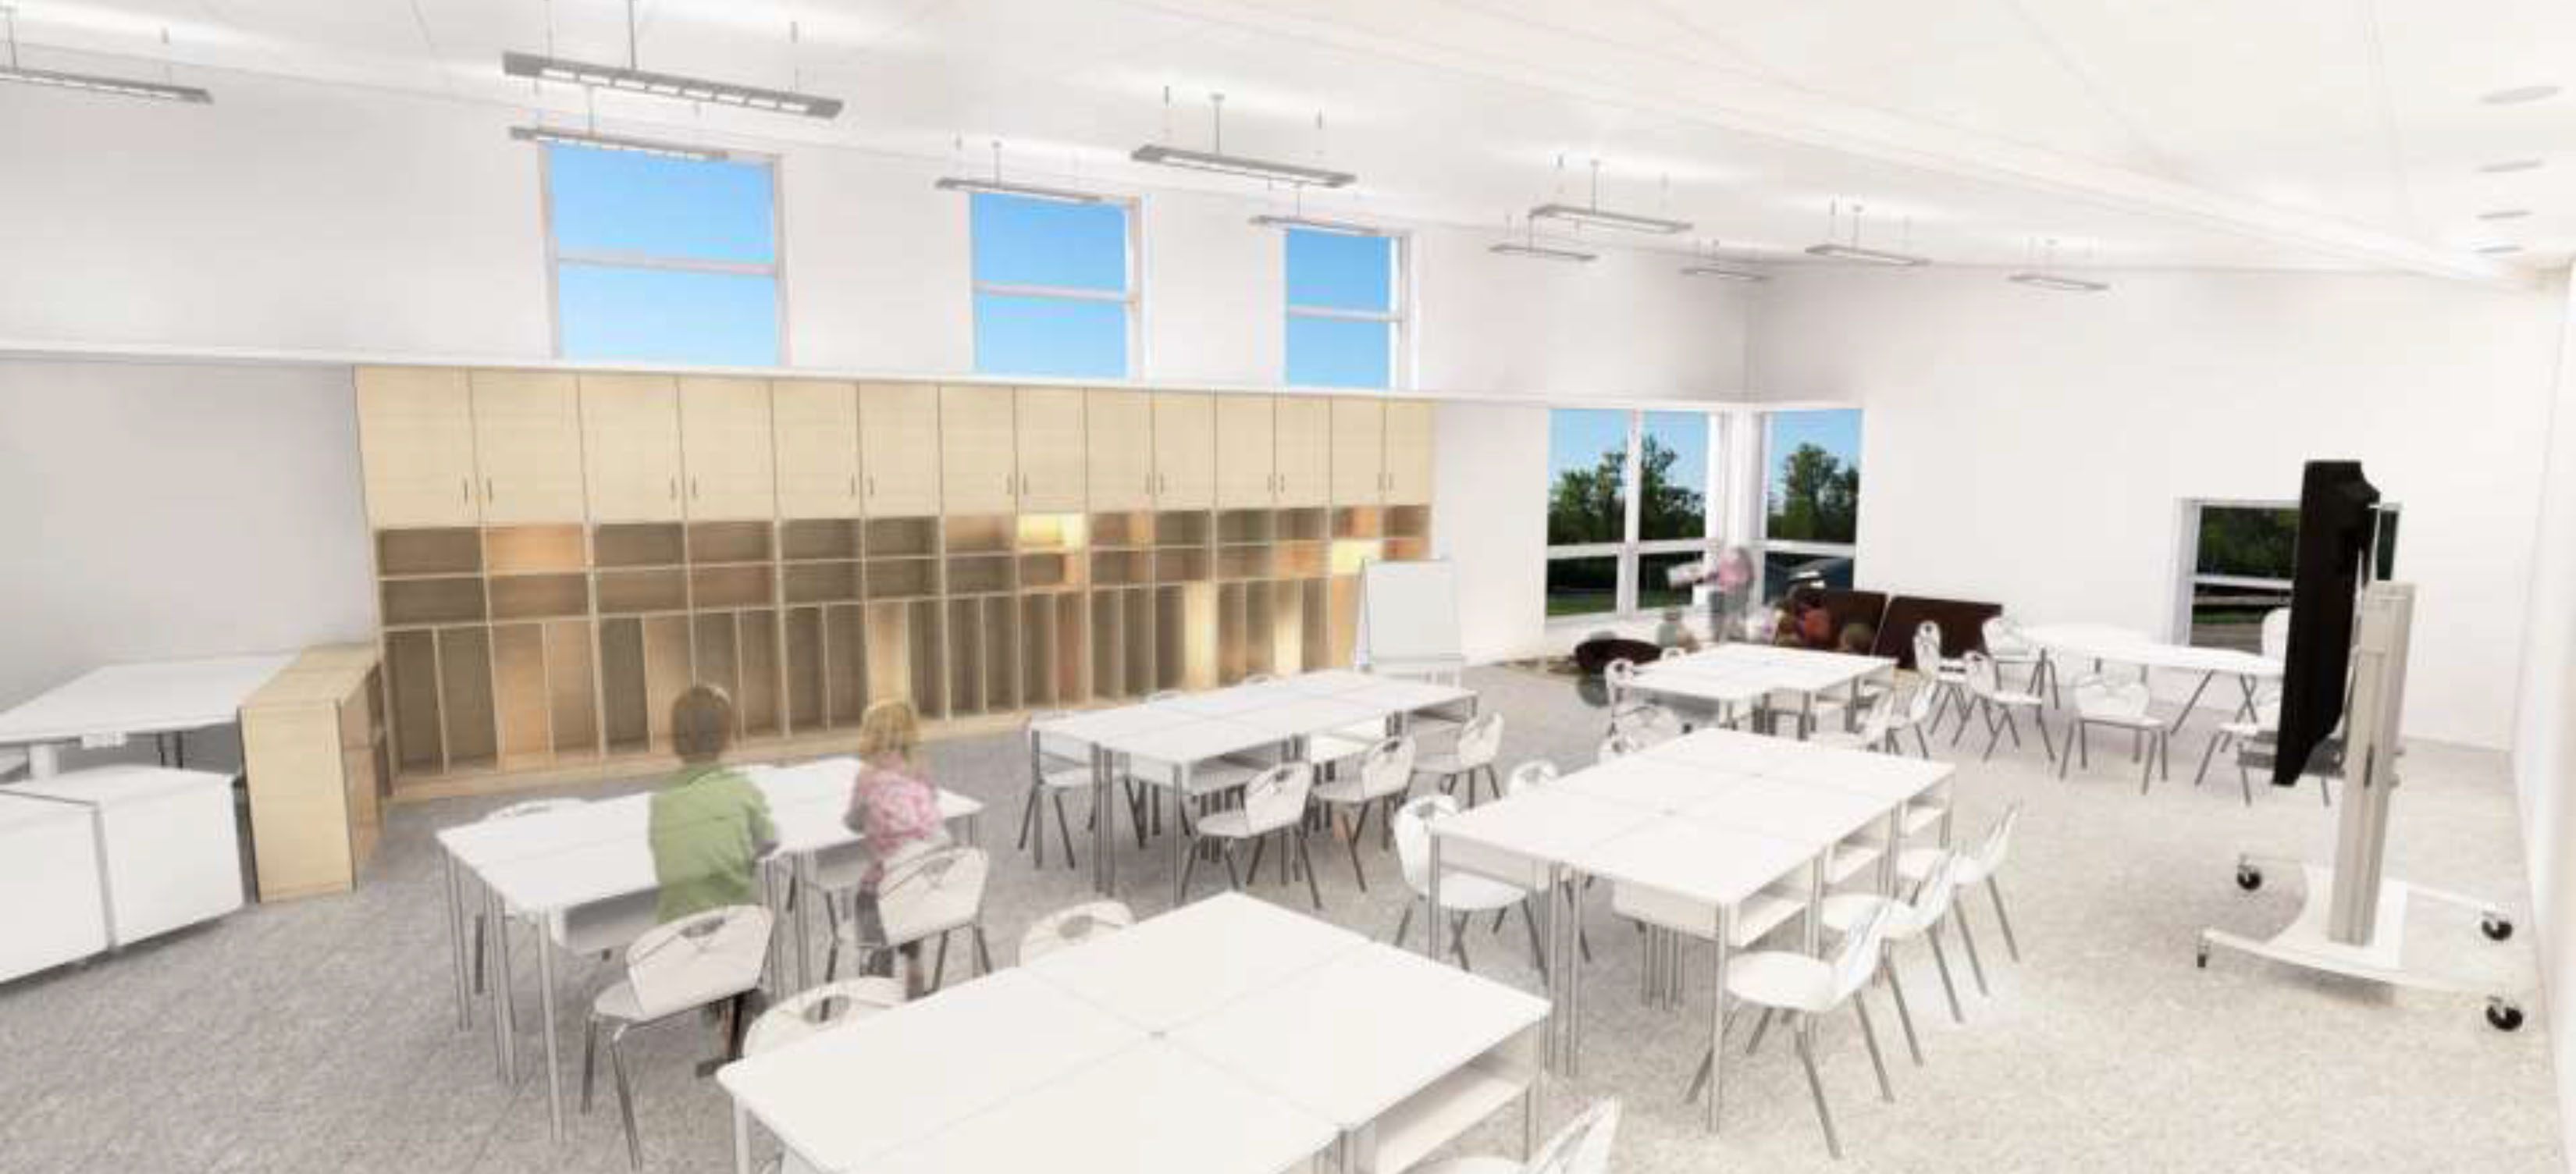 New Marshall Elementary School to Open in 2020